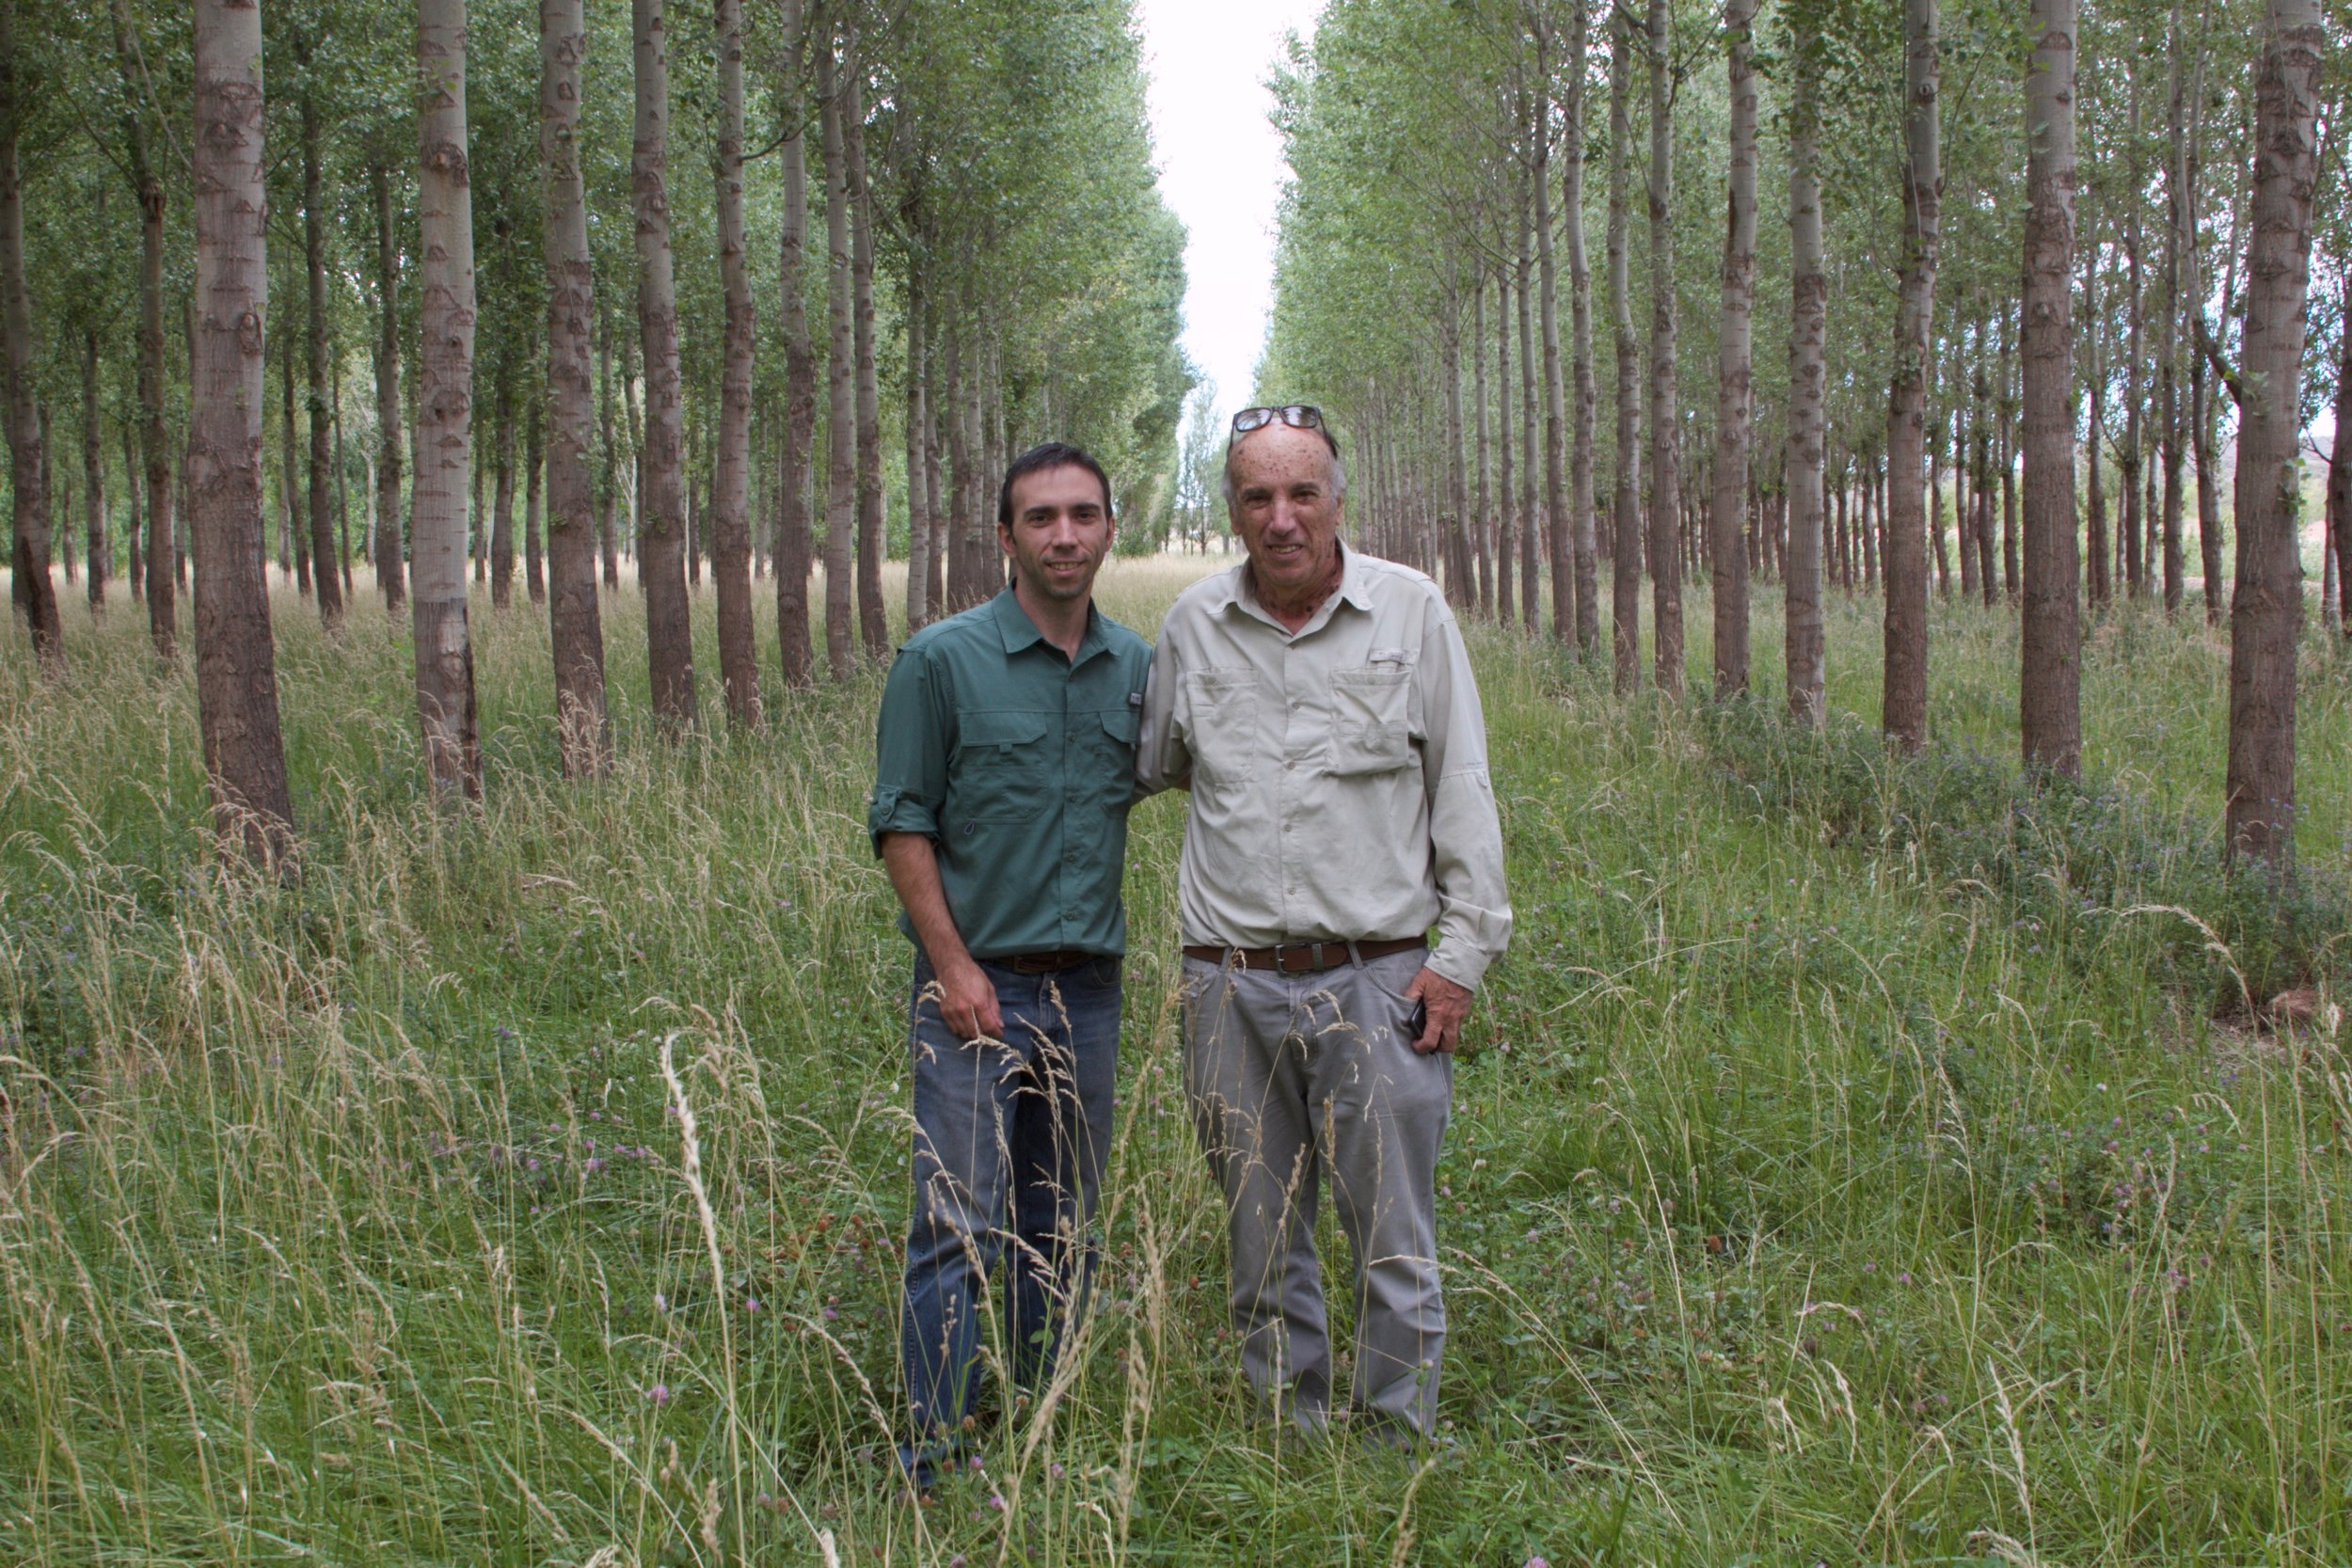 These men measure their age in  turnos de corte : intervals of 12-15 years, or the time it takes to plant and cut down a poplar tree. Pictured here are Norberto Serventi and his son Mauro. Norberto is a former forester and a keeper of the region's poplar knowledge. Mauro has followed in his father's footsteps and is also a forester.